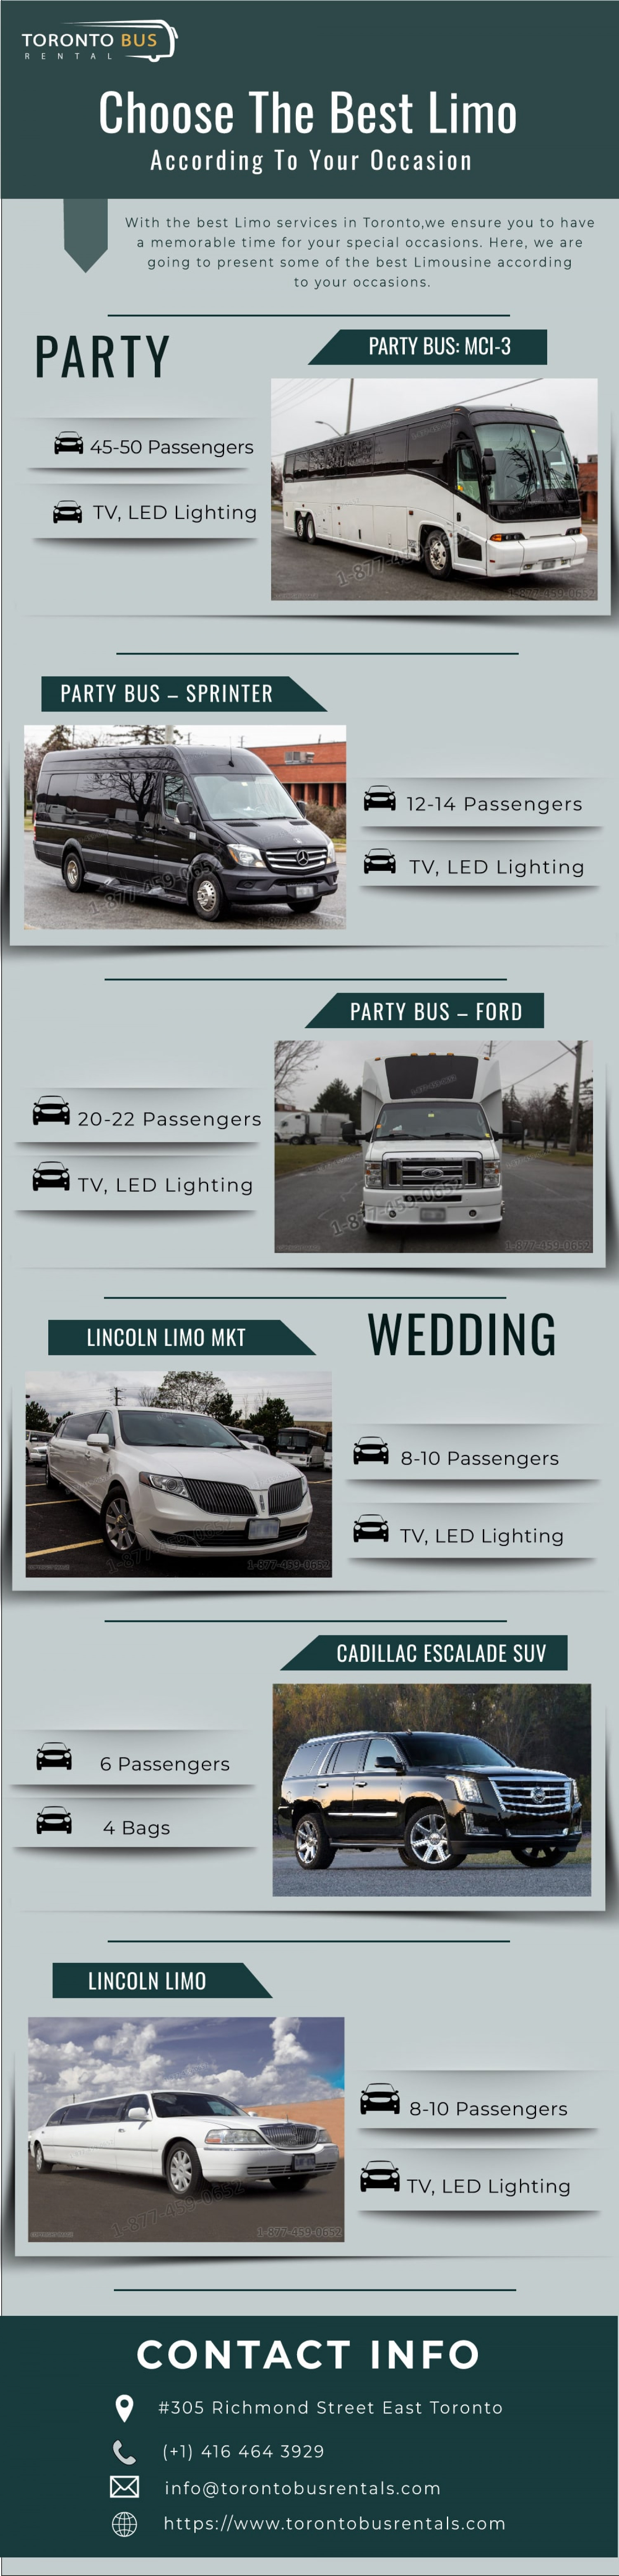 Choose the Best Limo According To Your Occasion Infographic